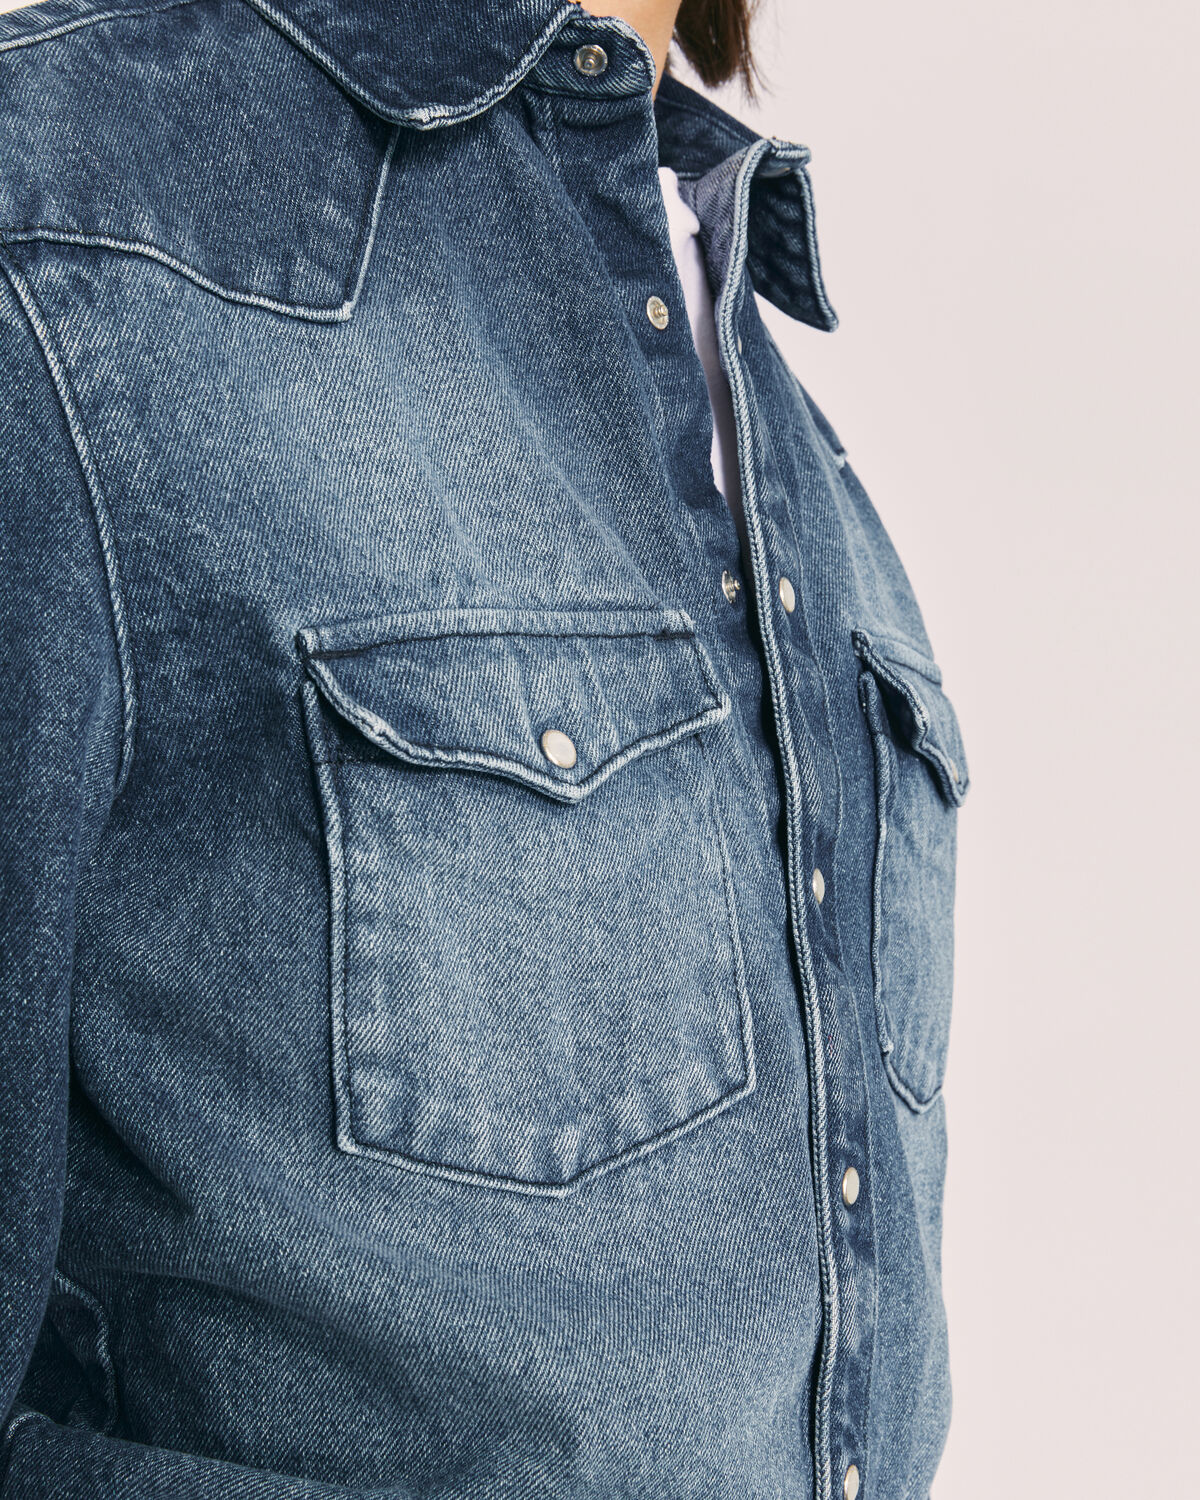 IRO - CHEMISE EN JEAN DÉLAVÉ TETSEN AUTHENTIC BLUE DENIM